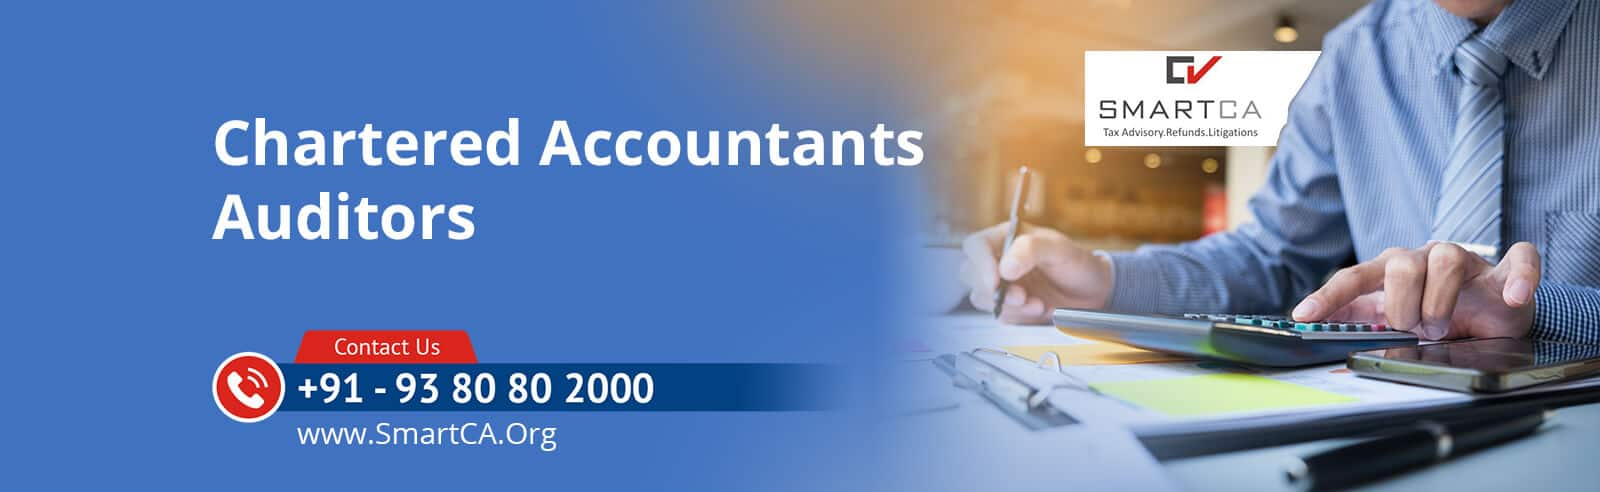 Auditors in Chennai Virugambakkam